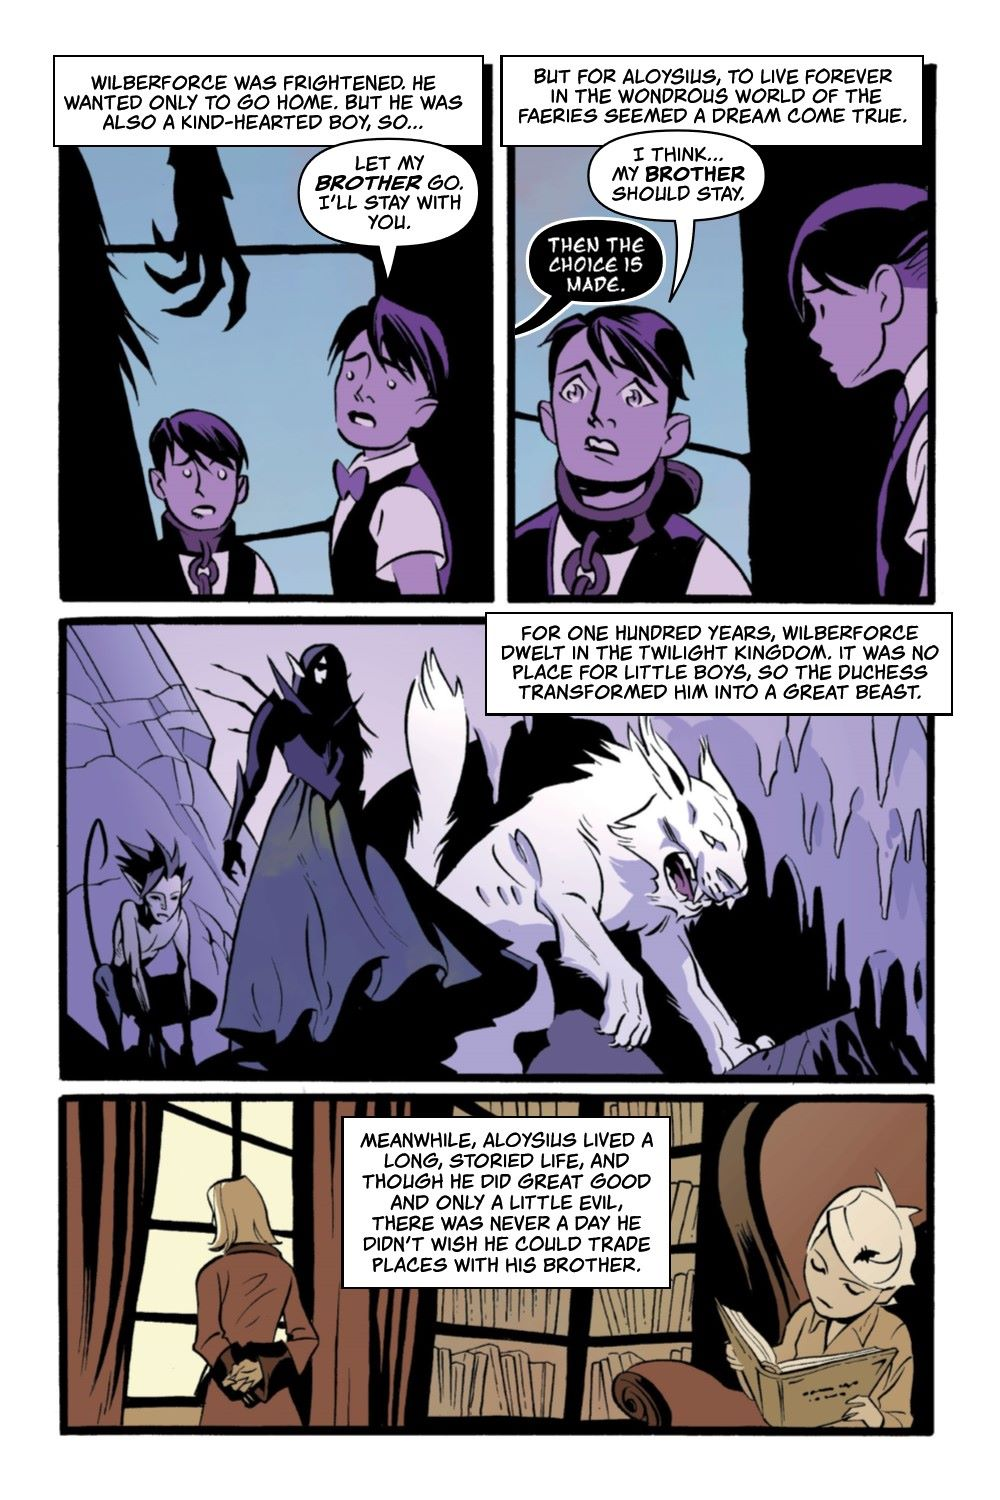 CRUMCHRON-V1-REFERENCE-009 ComicList Previews: THE CRUMRIN CHRONICLES VOLUME 1 THE CHARMED AND THE CURSED TP